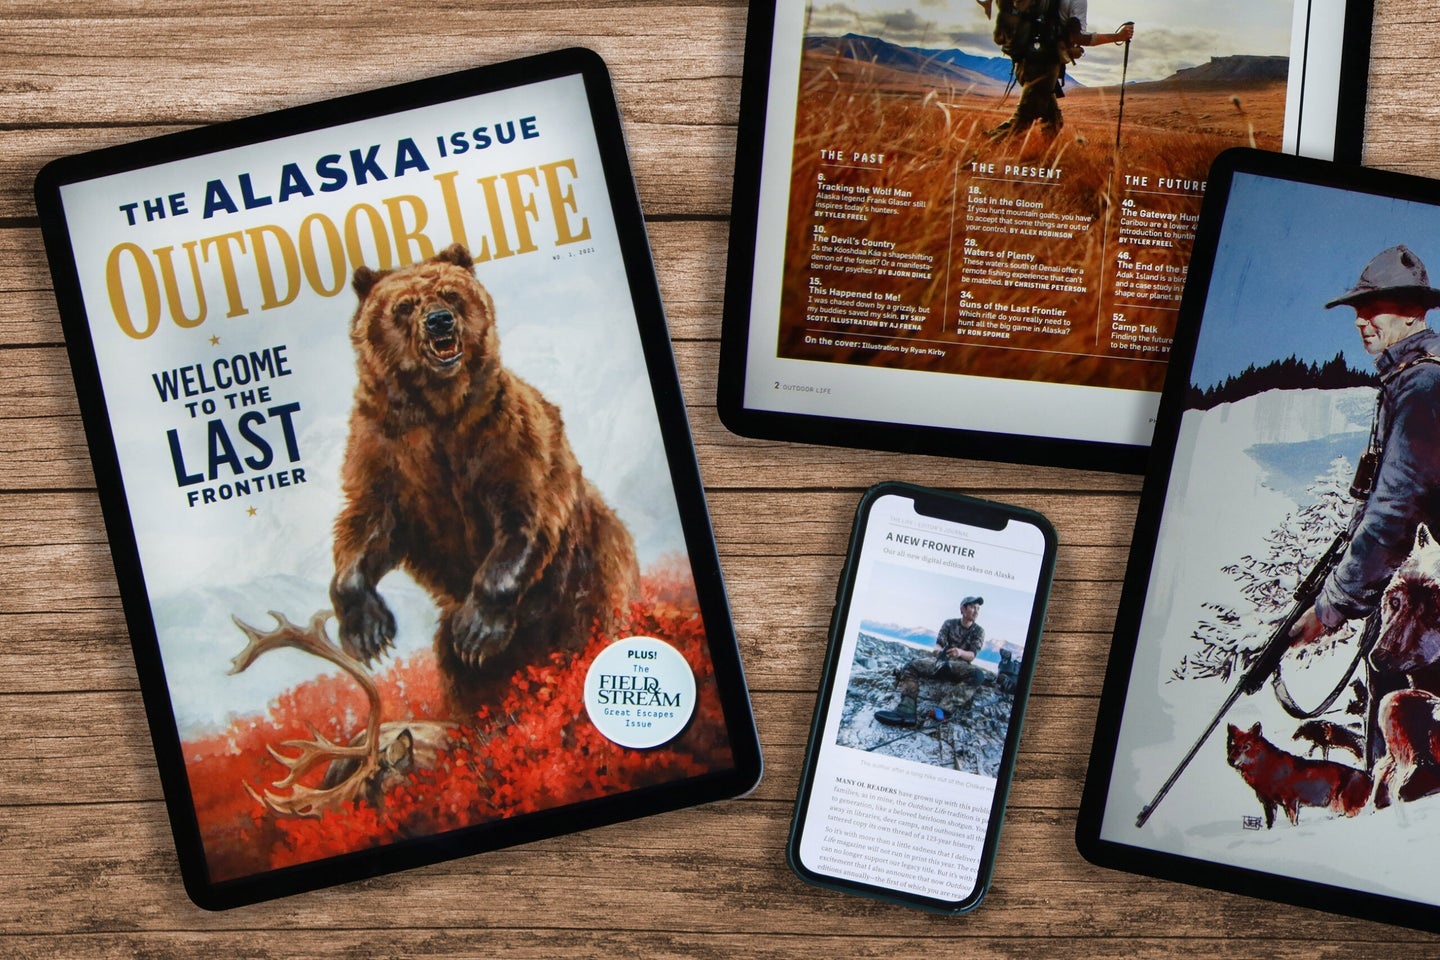 The Outdoor Life digital edition